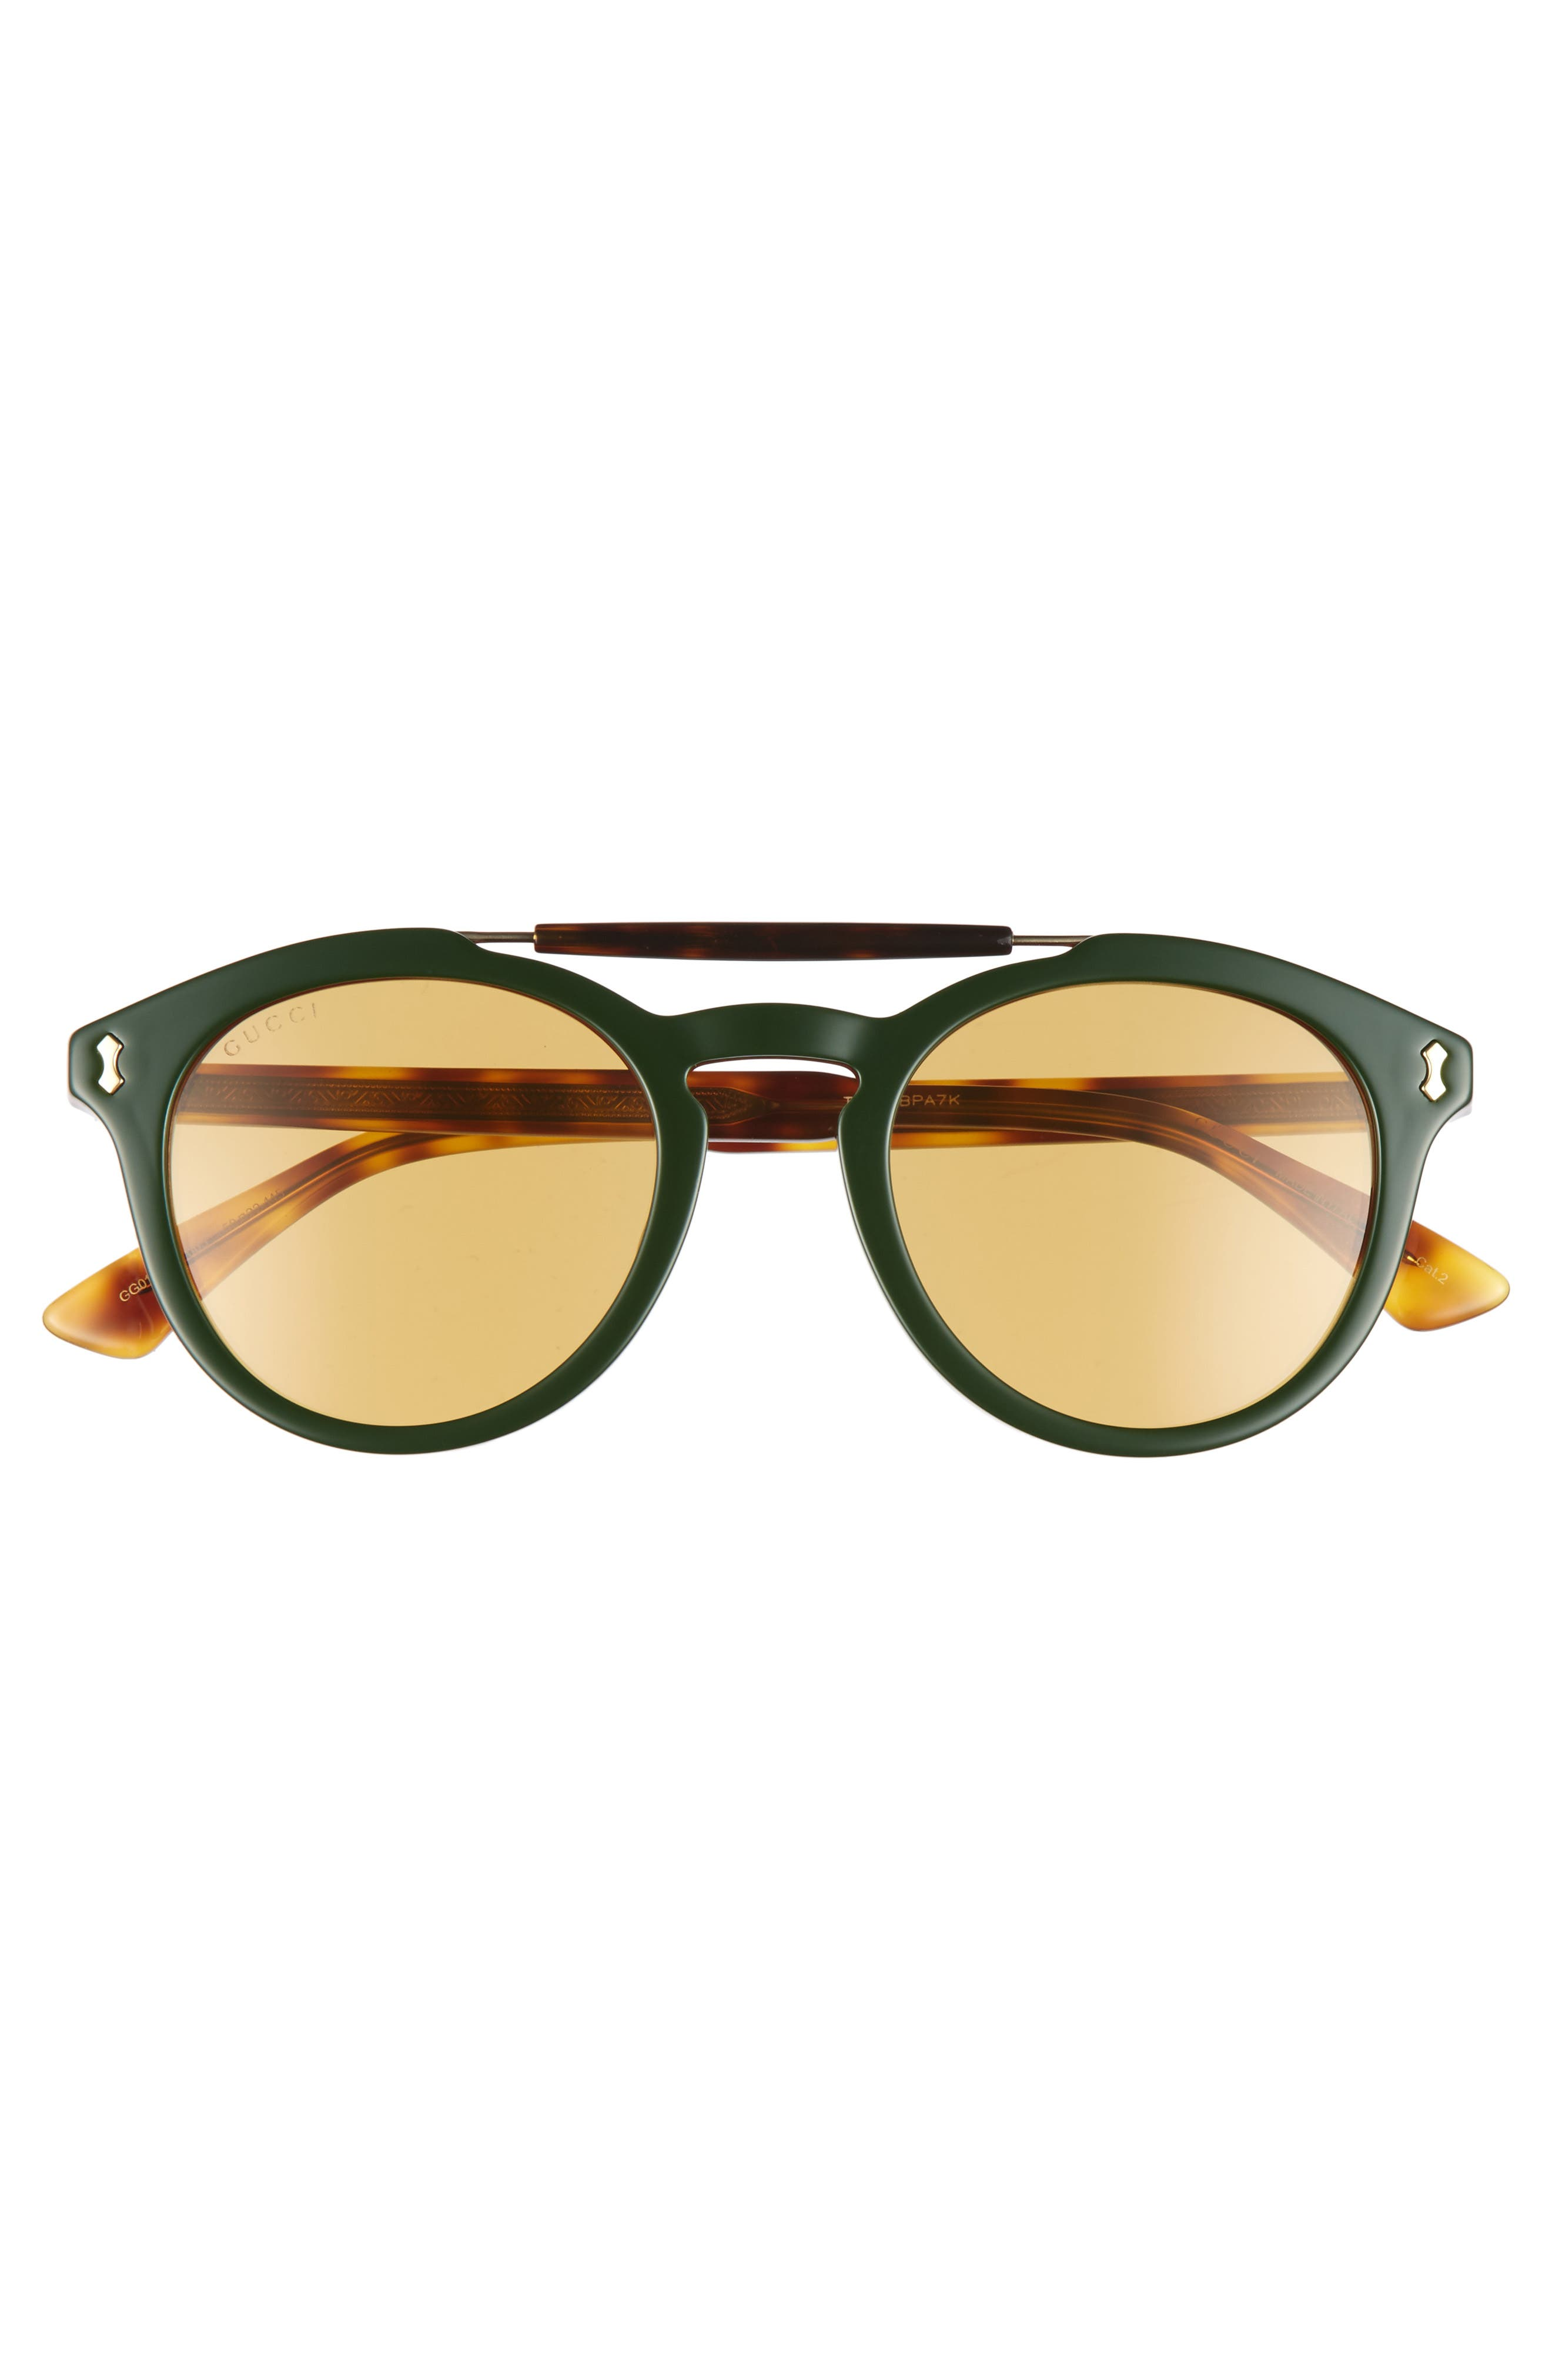 Vintage Pilot 50mm Sunglasses,                             Alternate thumbnail 2, color,                             Green-Red Web/ Nicotine